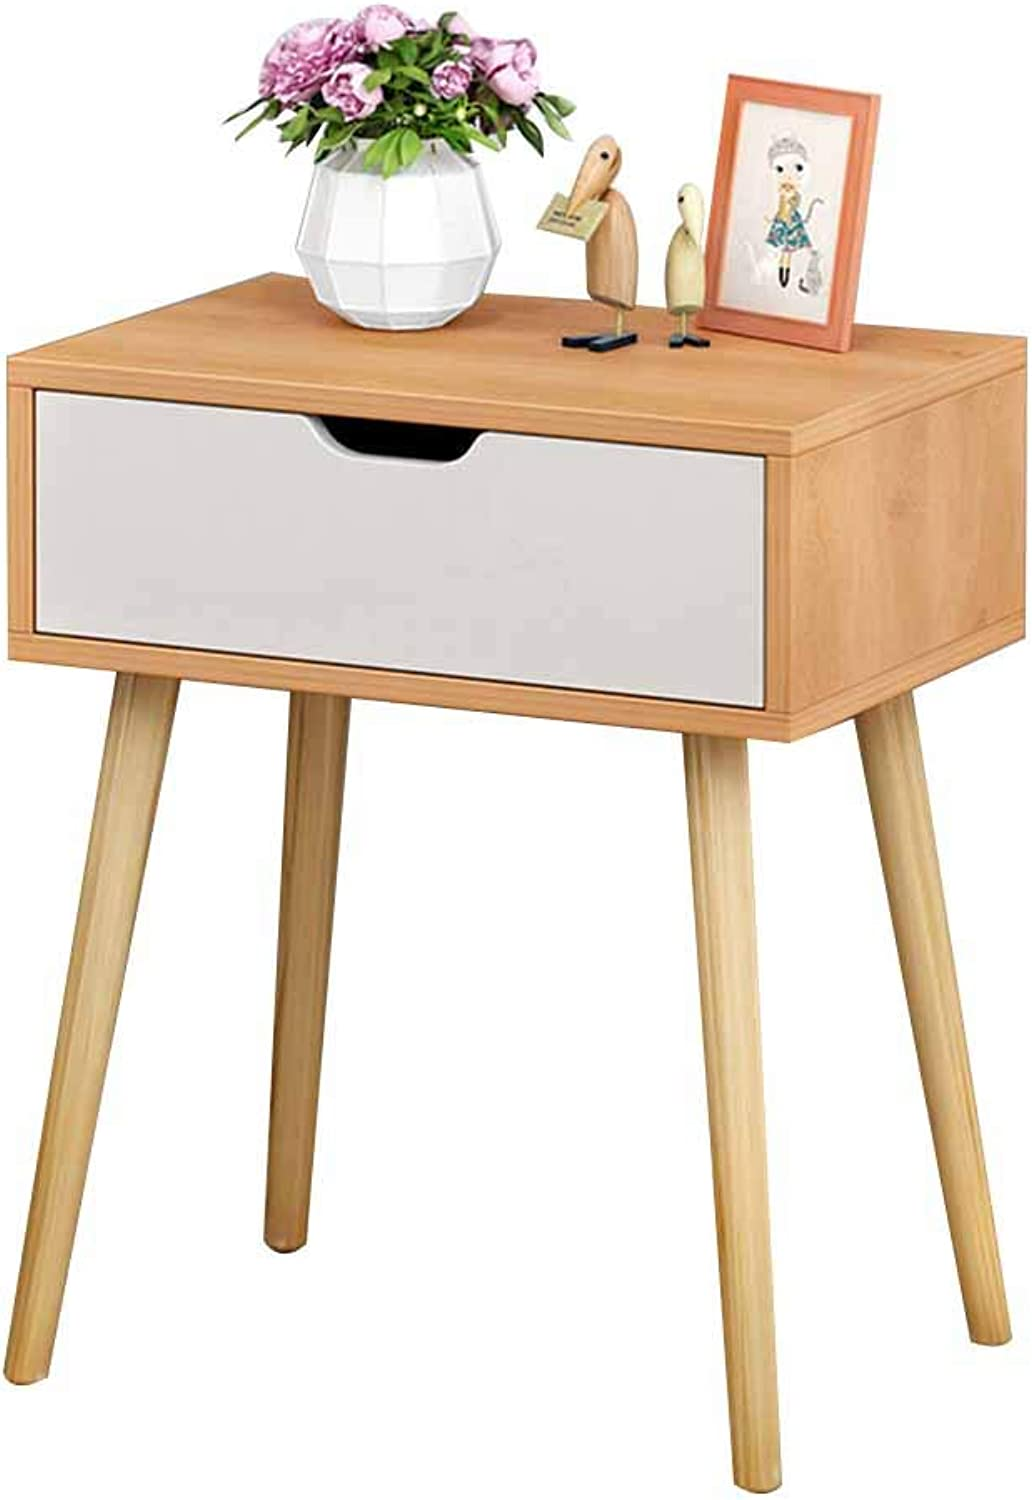 Coffee Table Bedside Table, Invisible Handle, Single Drawer Multipurpose Storage Solid Wood Legs Used for Study Bedroom 2 Colours (color   Wood color)